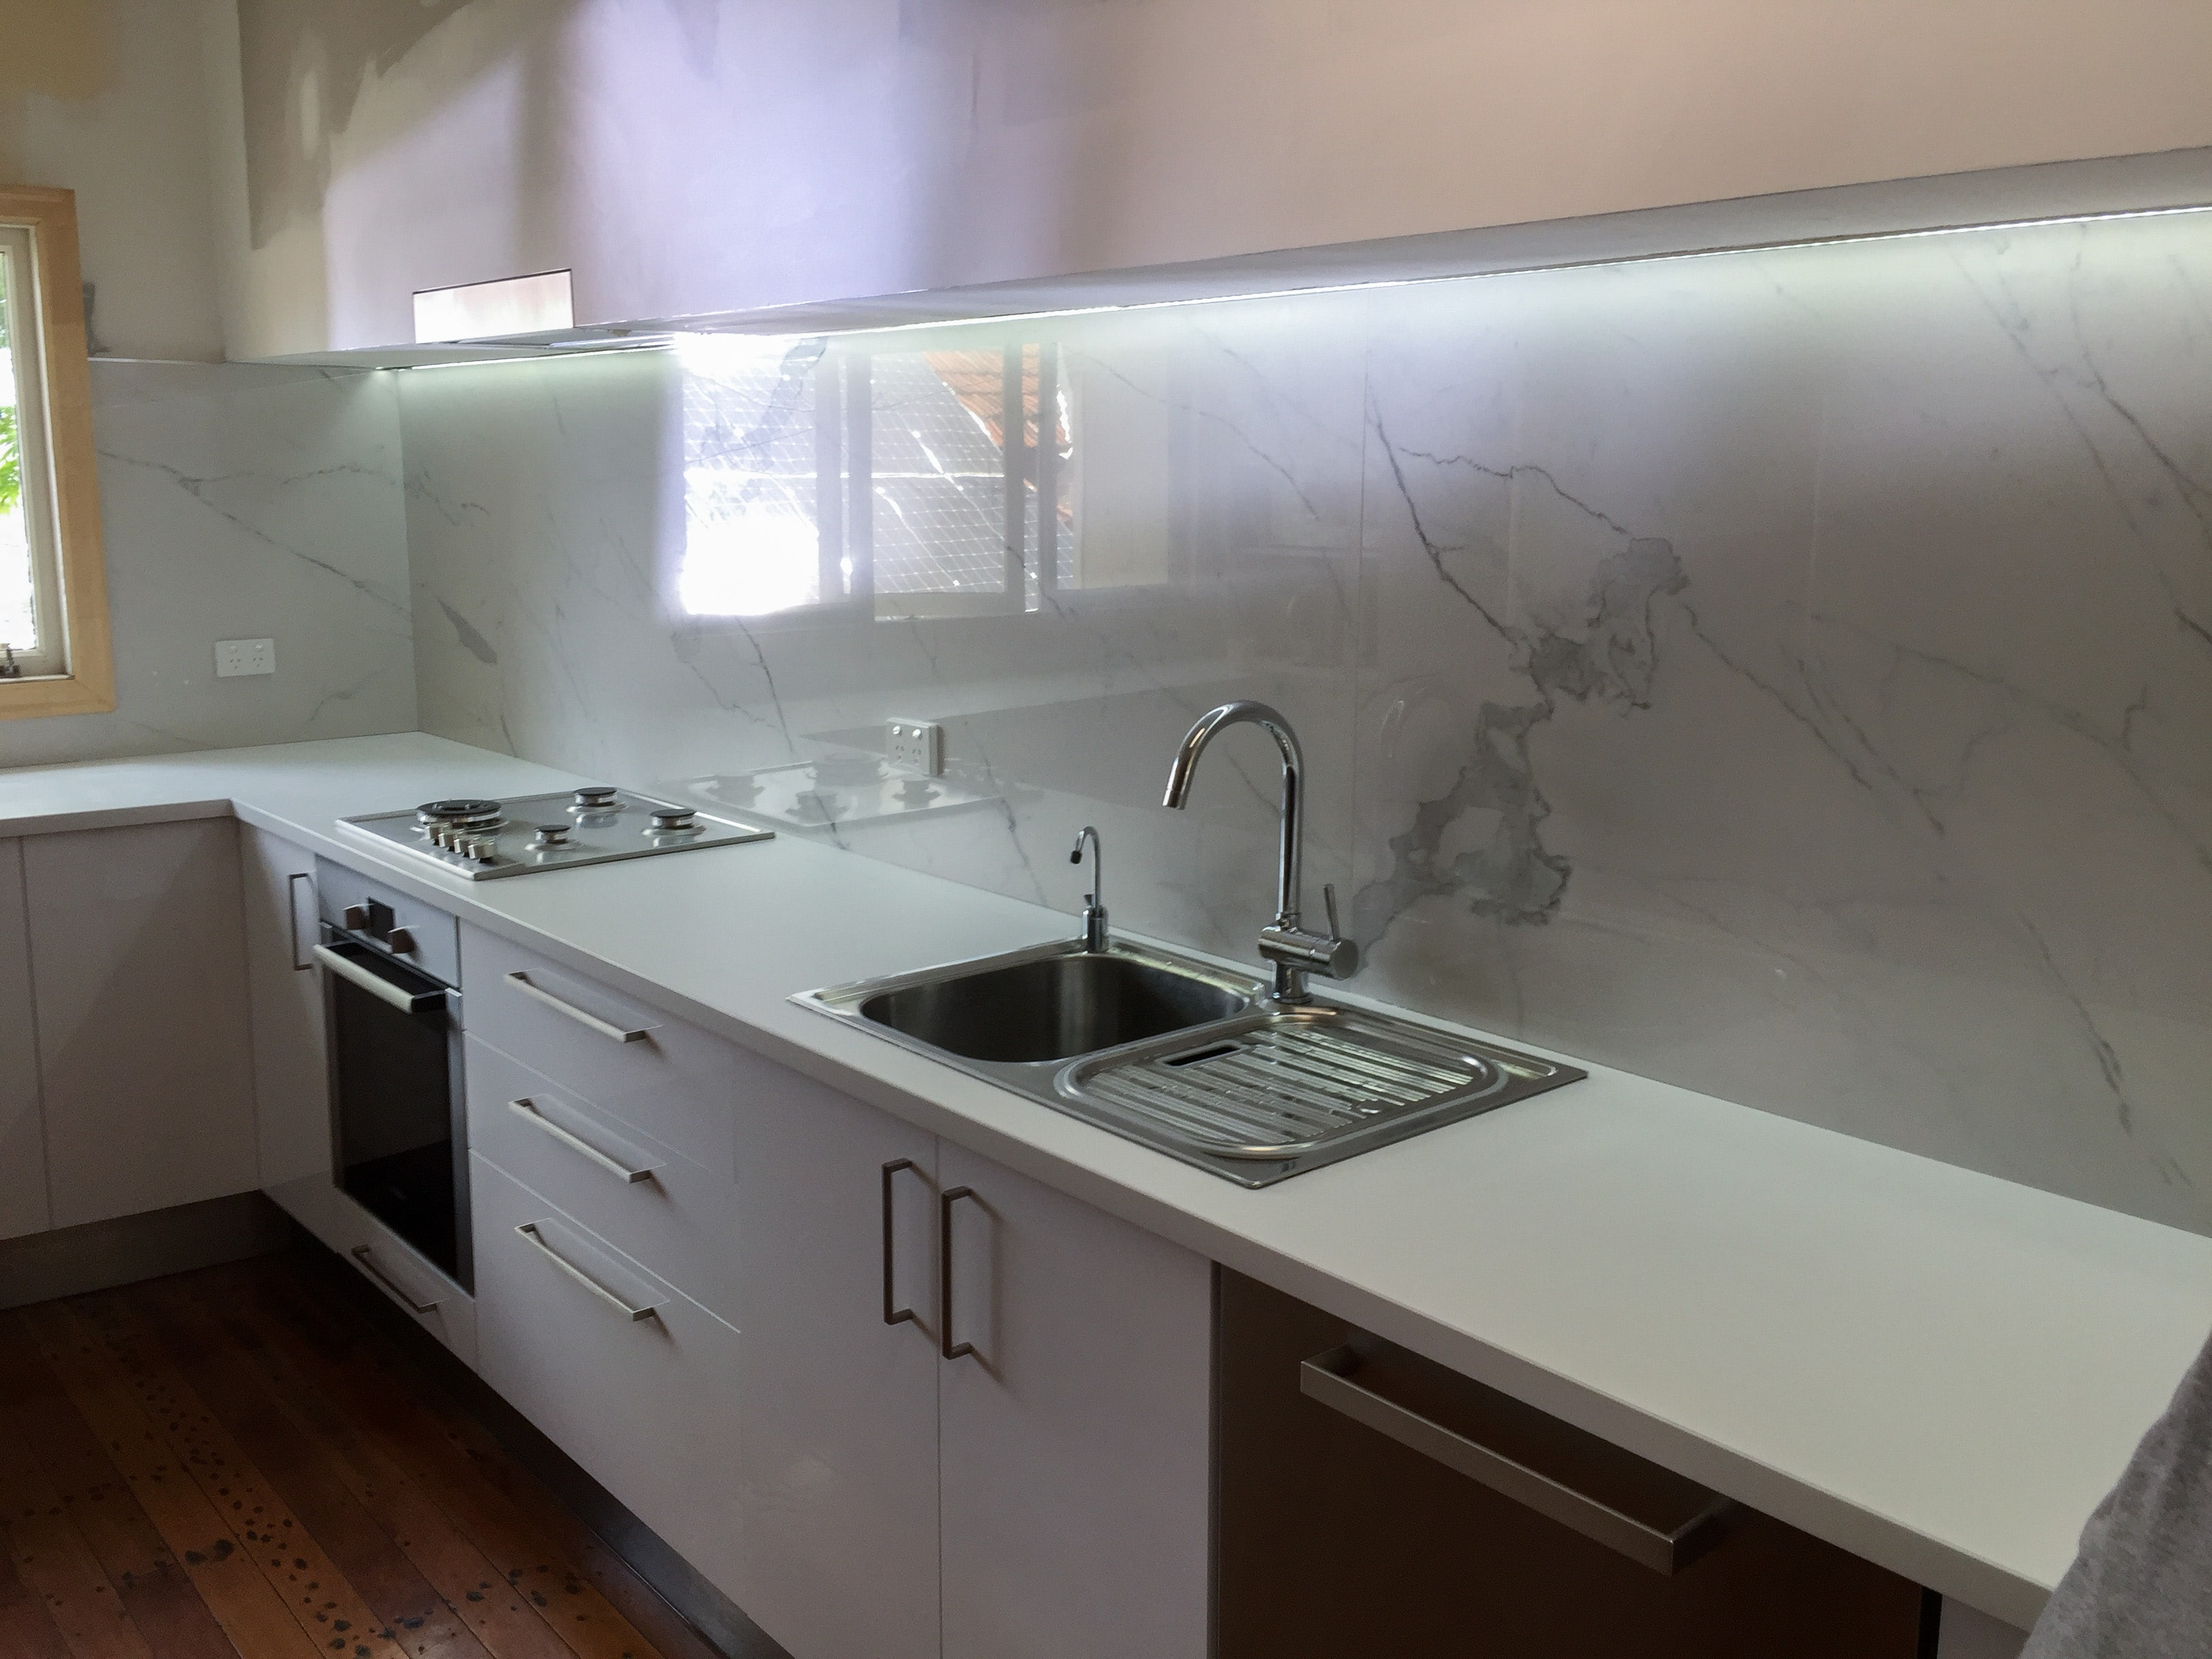 Kitchen Splashback Large Tile Seq Tiling And Cladding